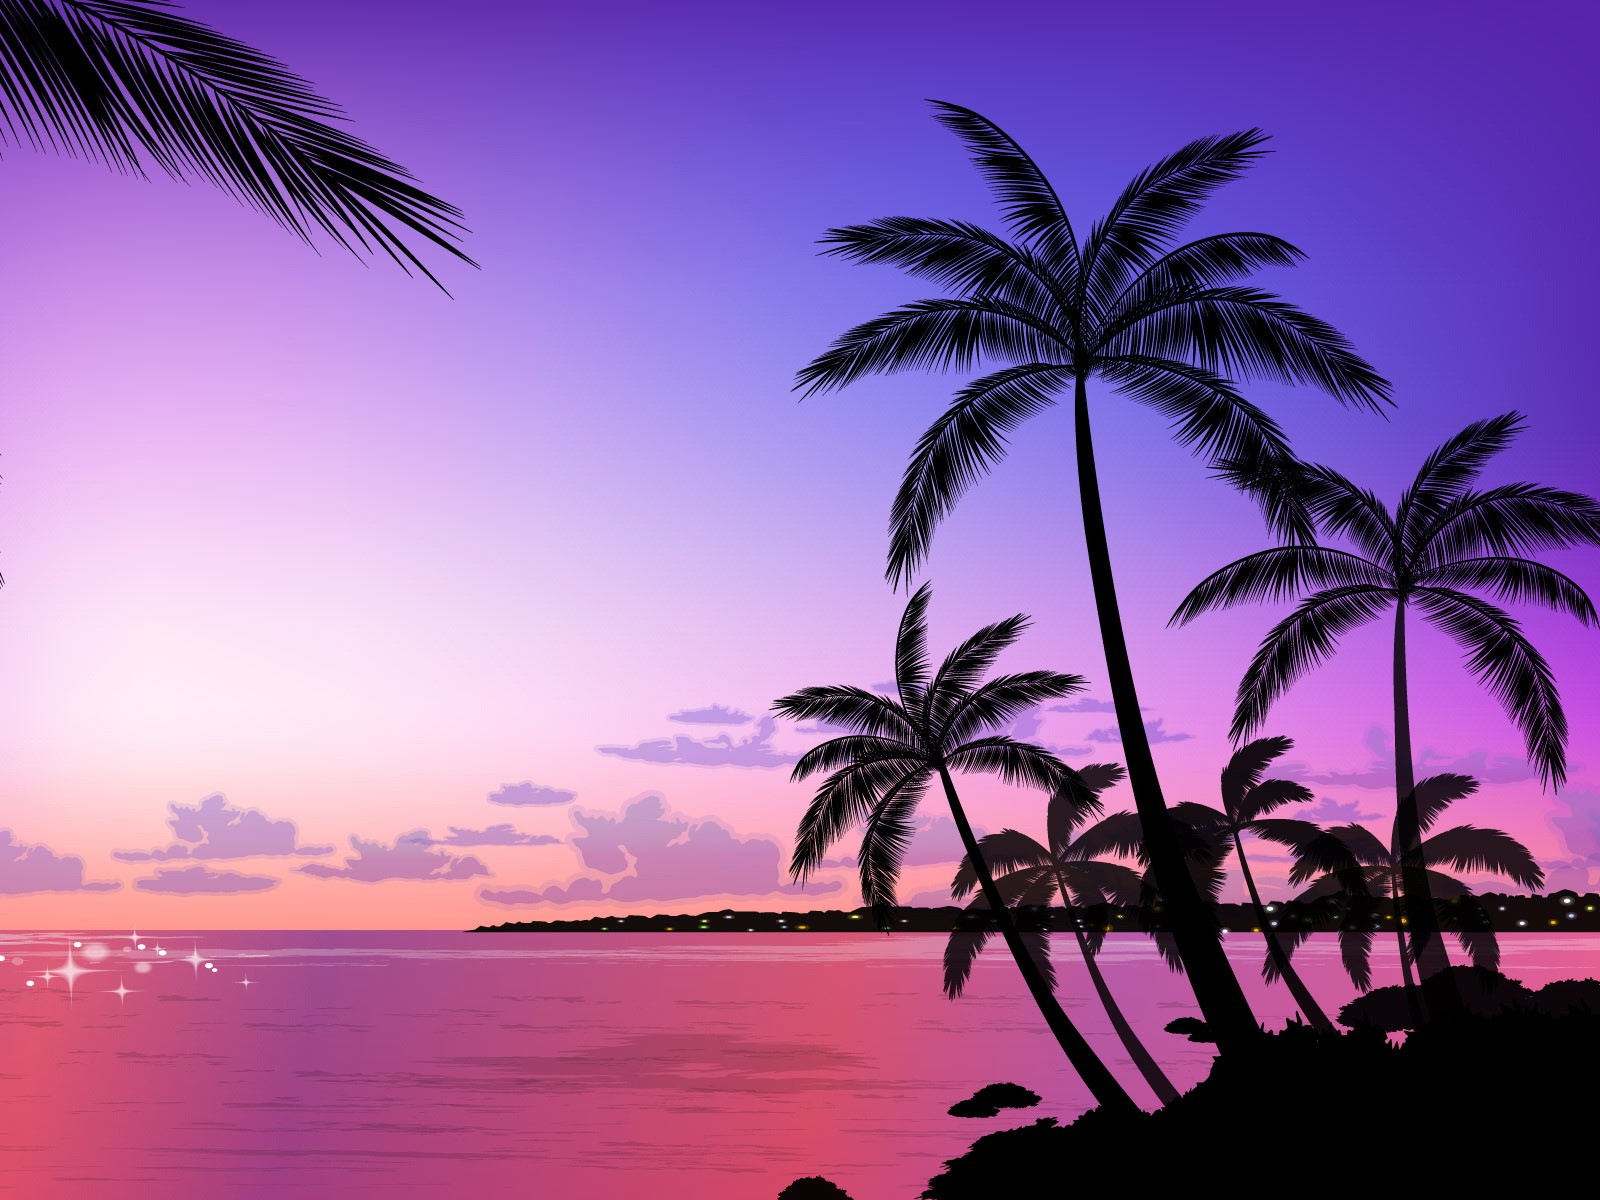 15 Wonderful HD Palm Tree Wallpapers Palm Trees Backgrounds Tumblr